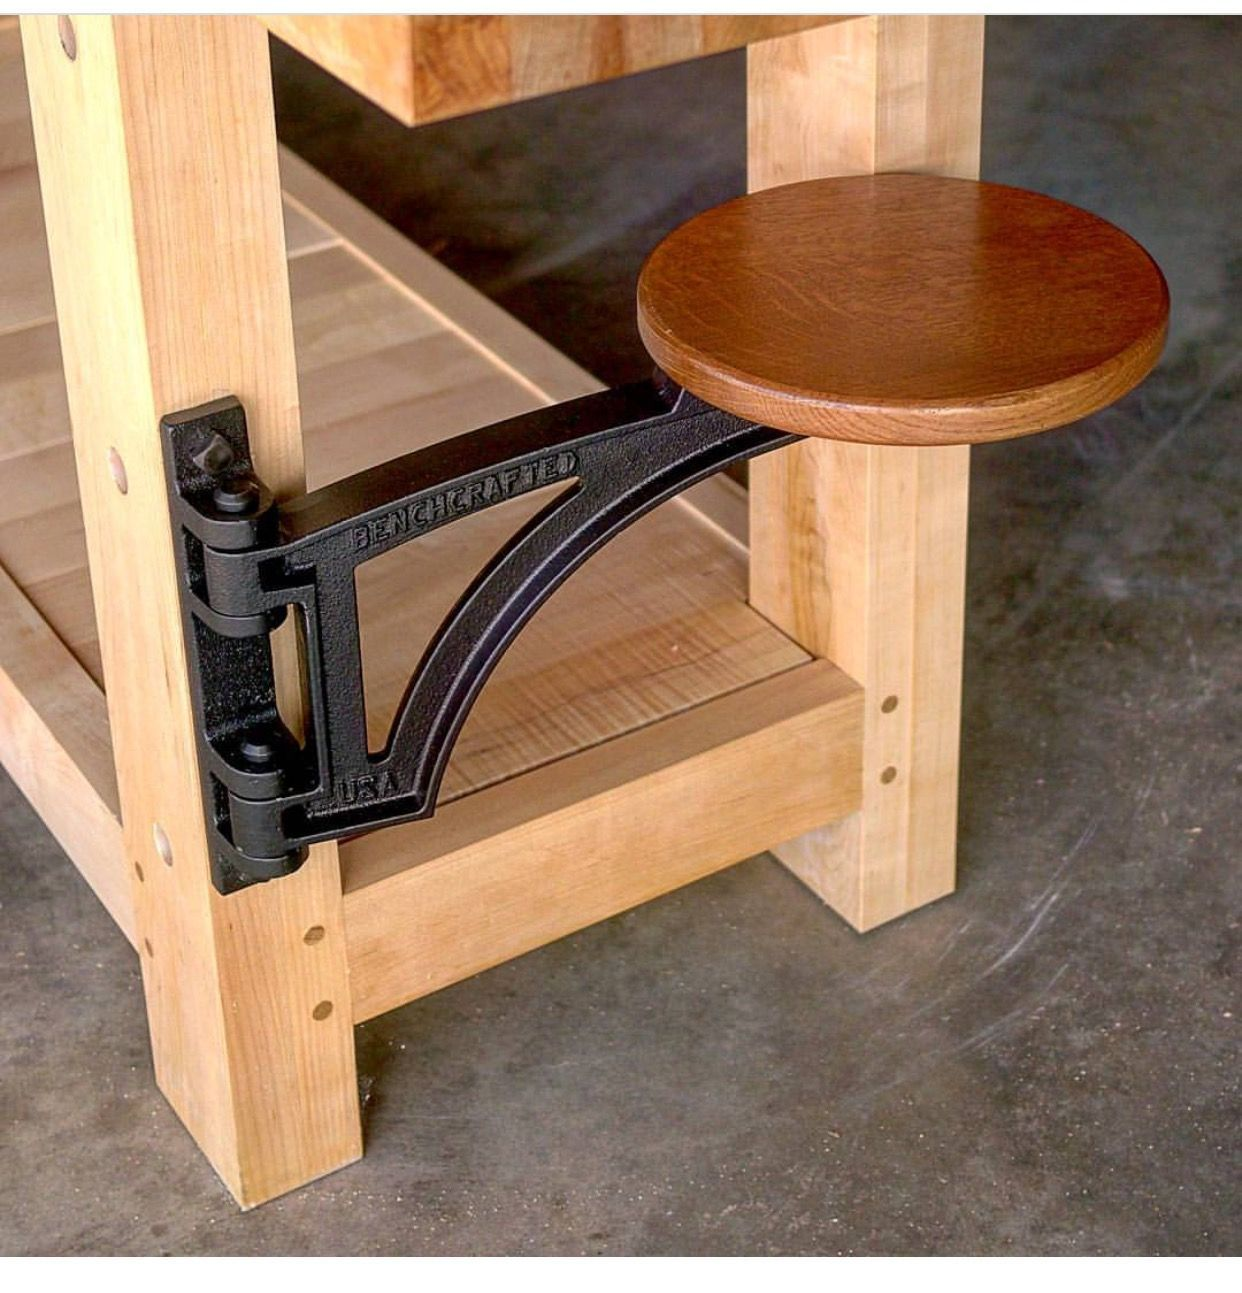 diy clamps woodworking useful clamping tricks for on useful diy wood project ideas beginner woodworking plans id=28614